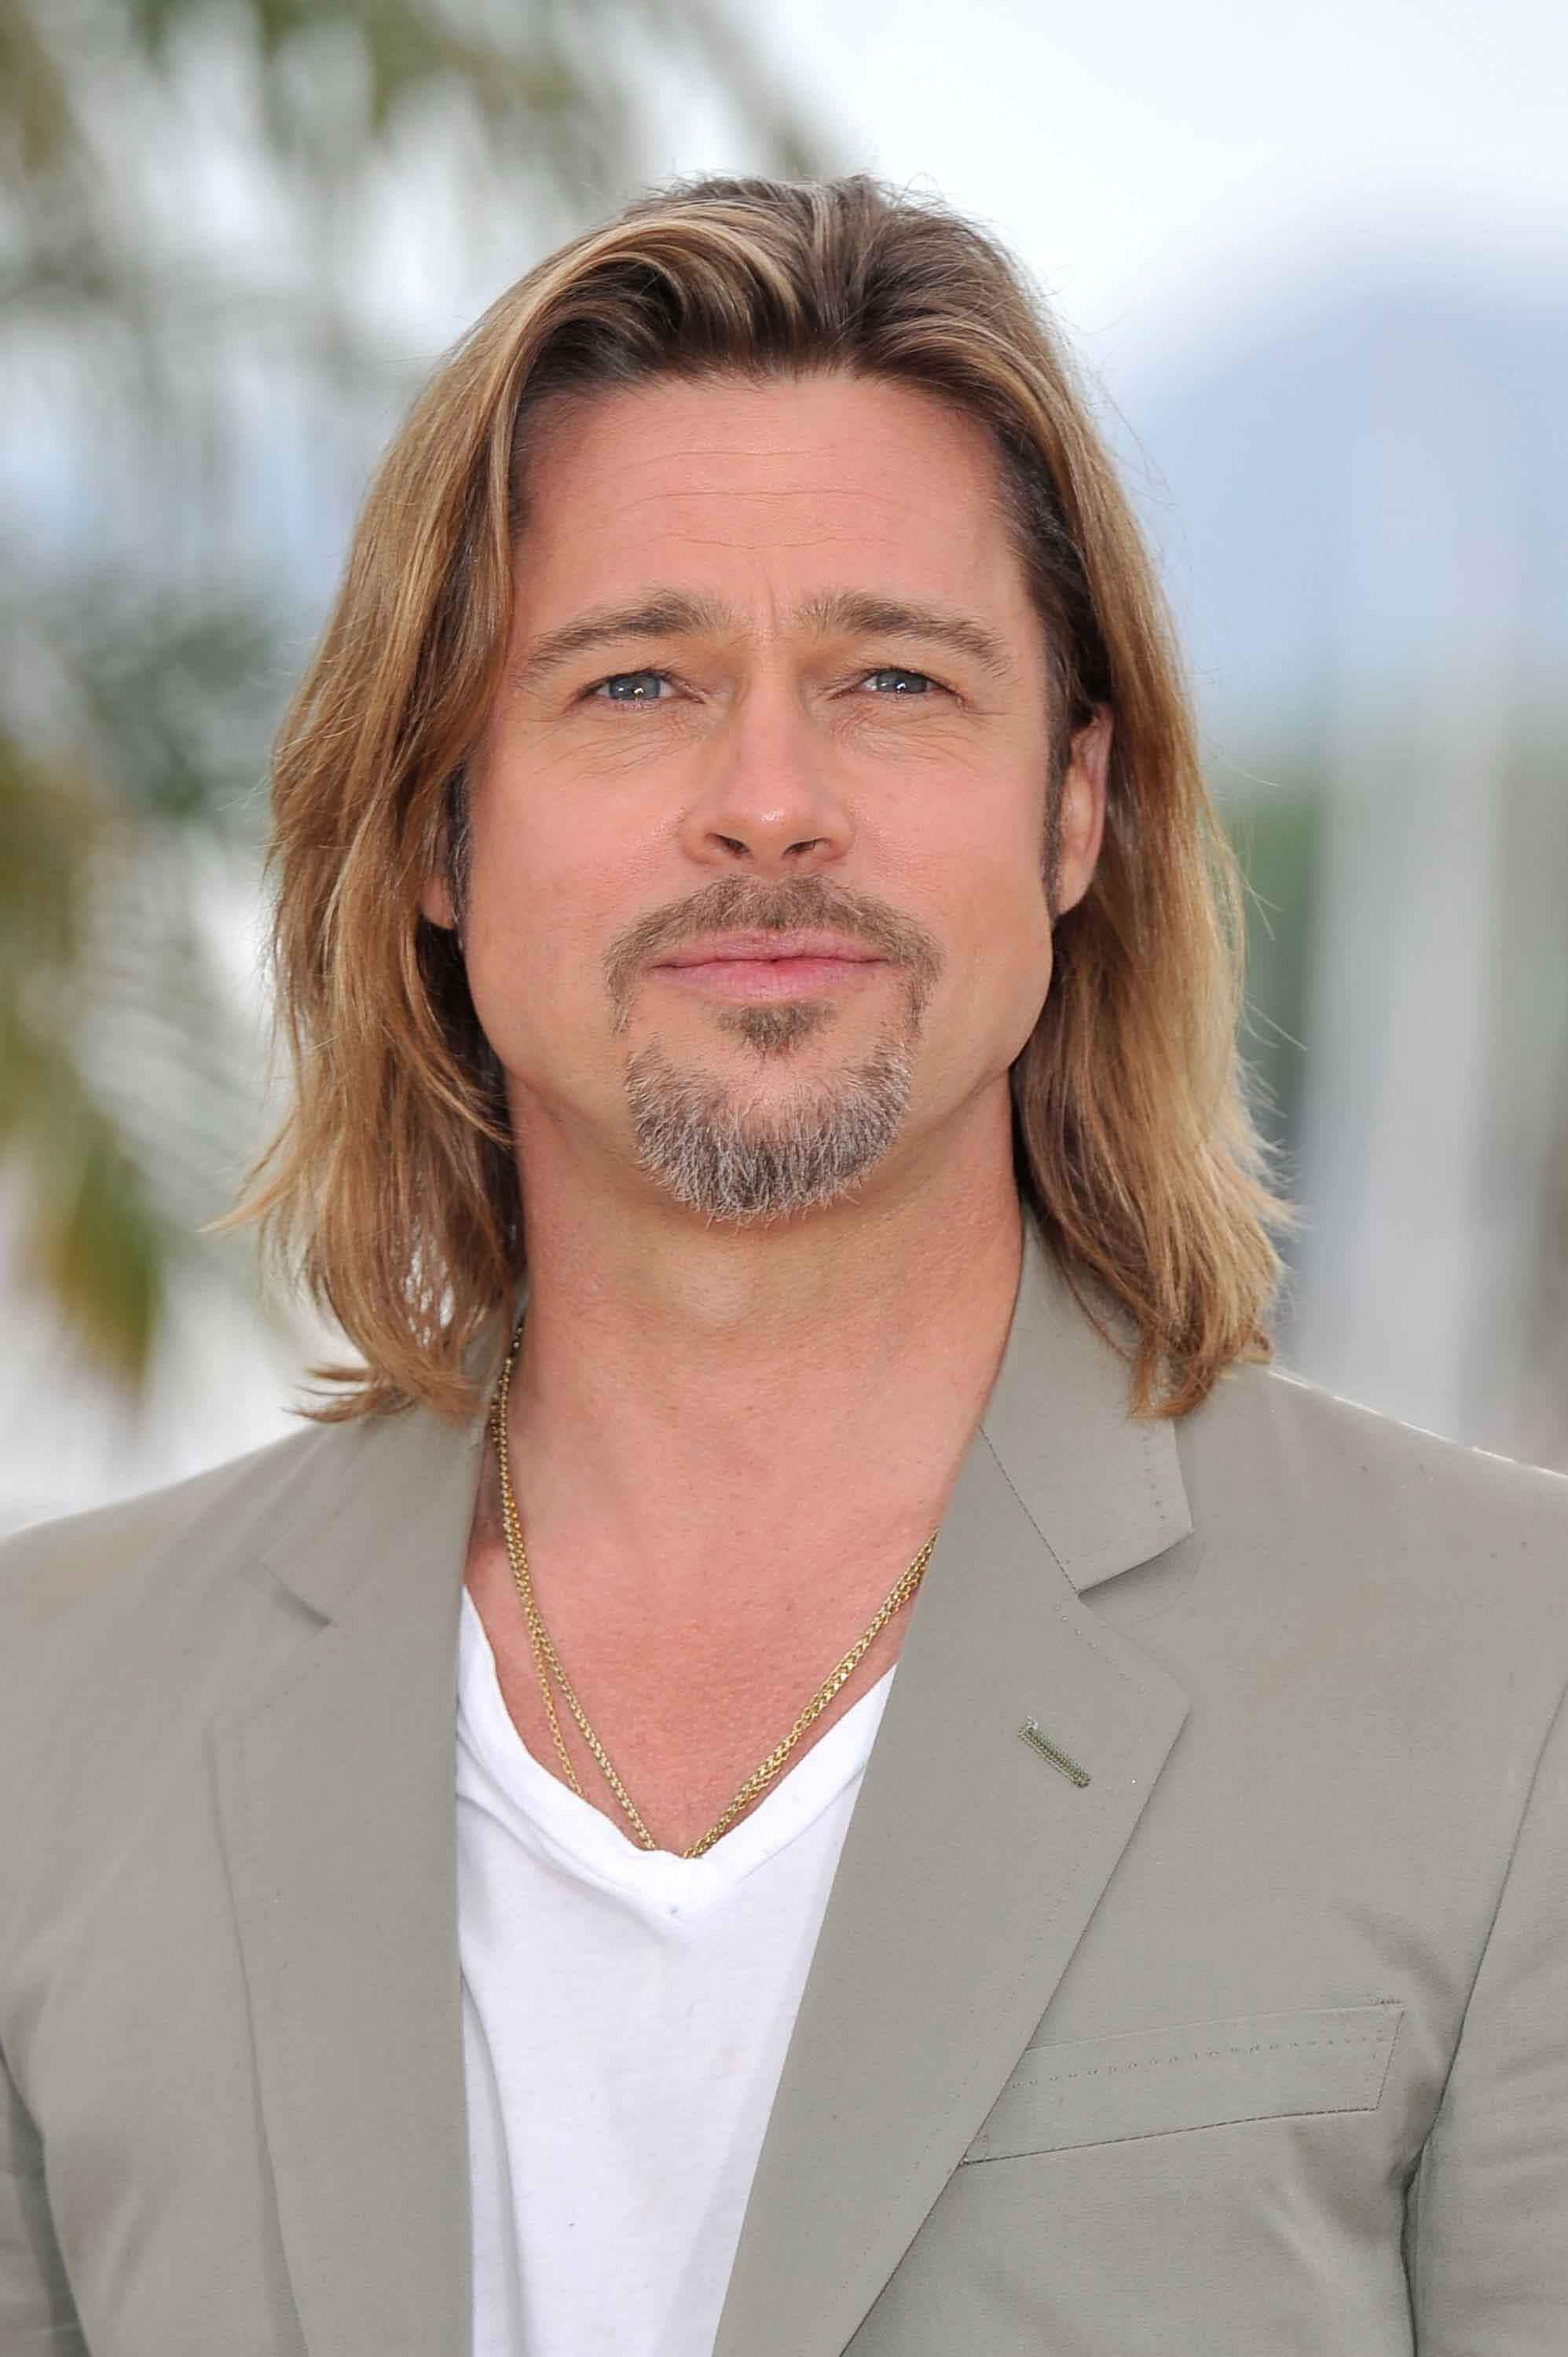 Guys with long hair: All Things Hair - IMAGE - Brad Pitt light brown hair